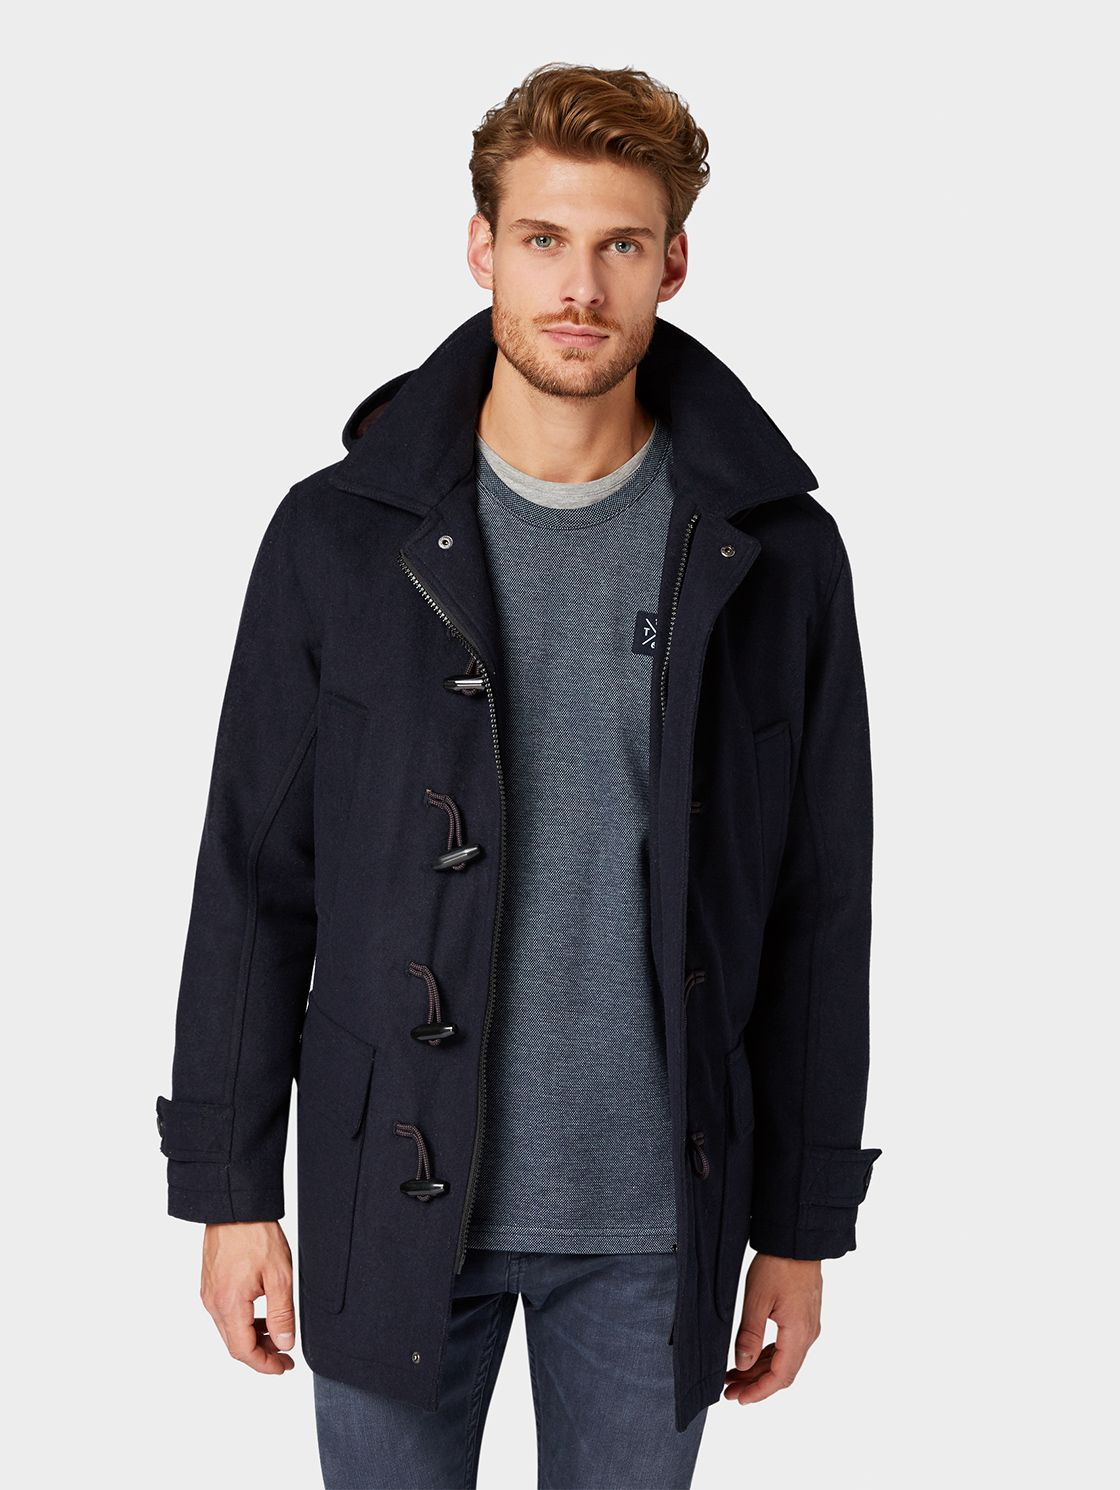 Www.tom Tailor Online Shop.de Duffle Coat For 149 99 Instead Of 169 99 Order Now At Tom